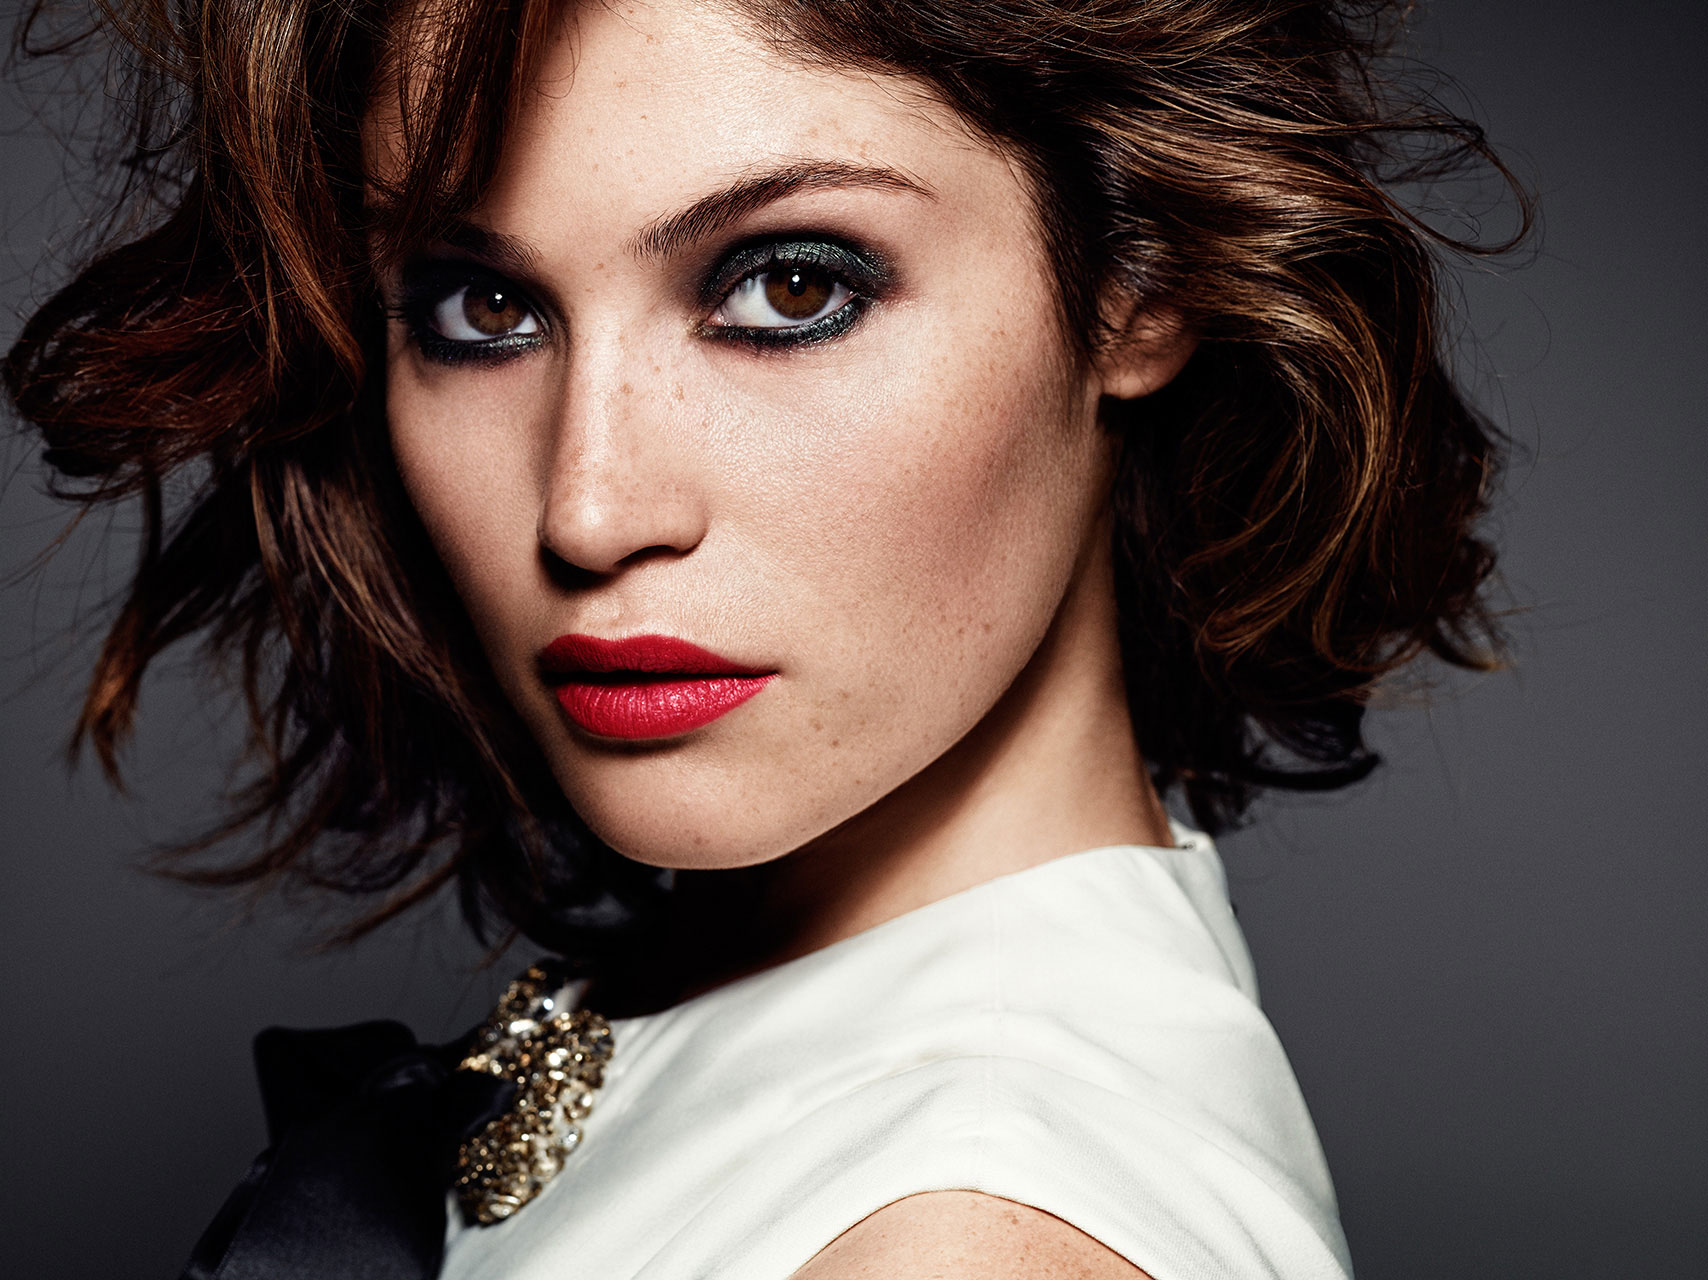 GEMMA ARTERTON | UK GLAMOUR | CHRIS CRAYMER